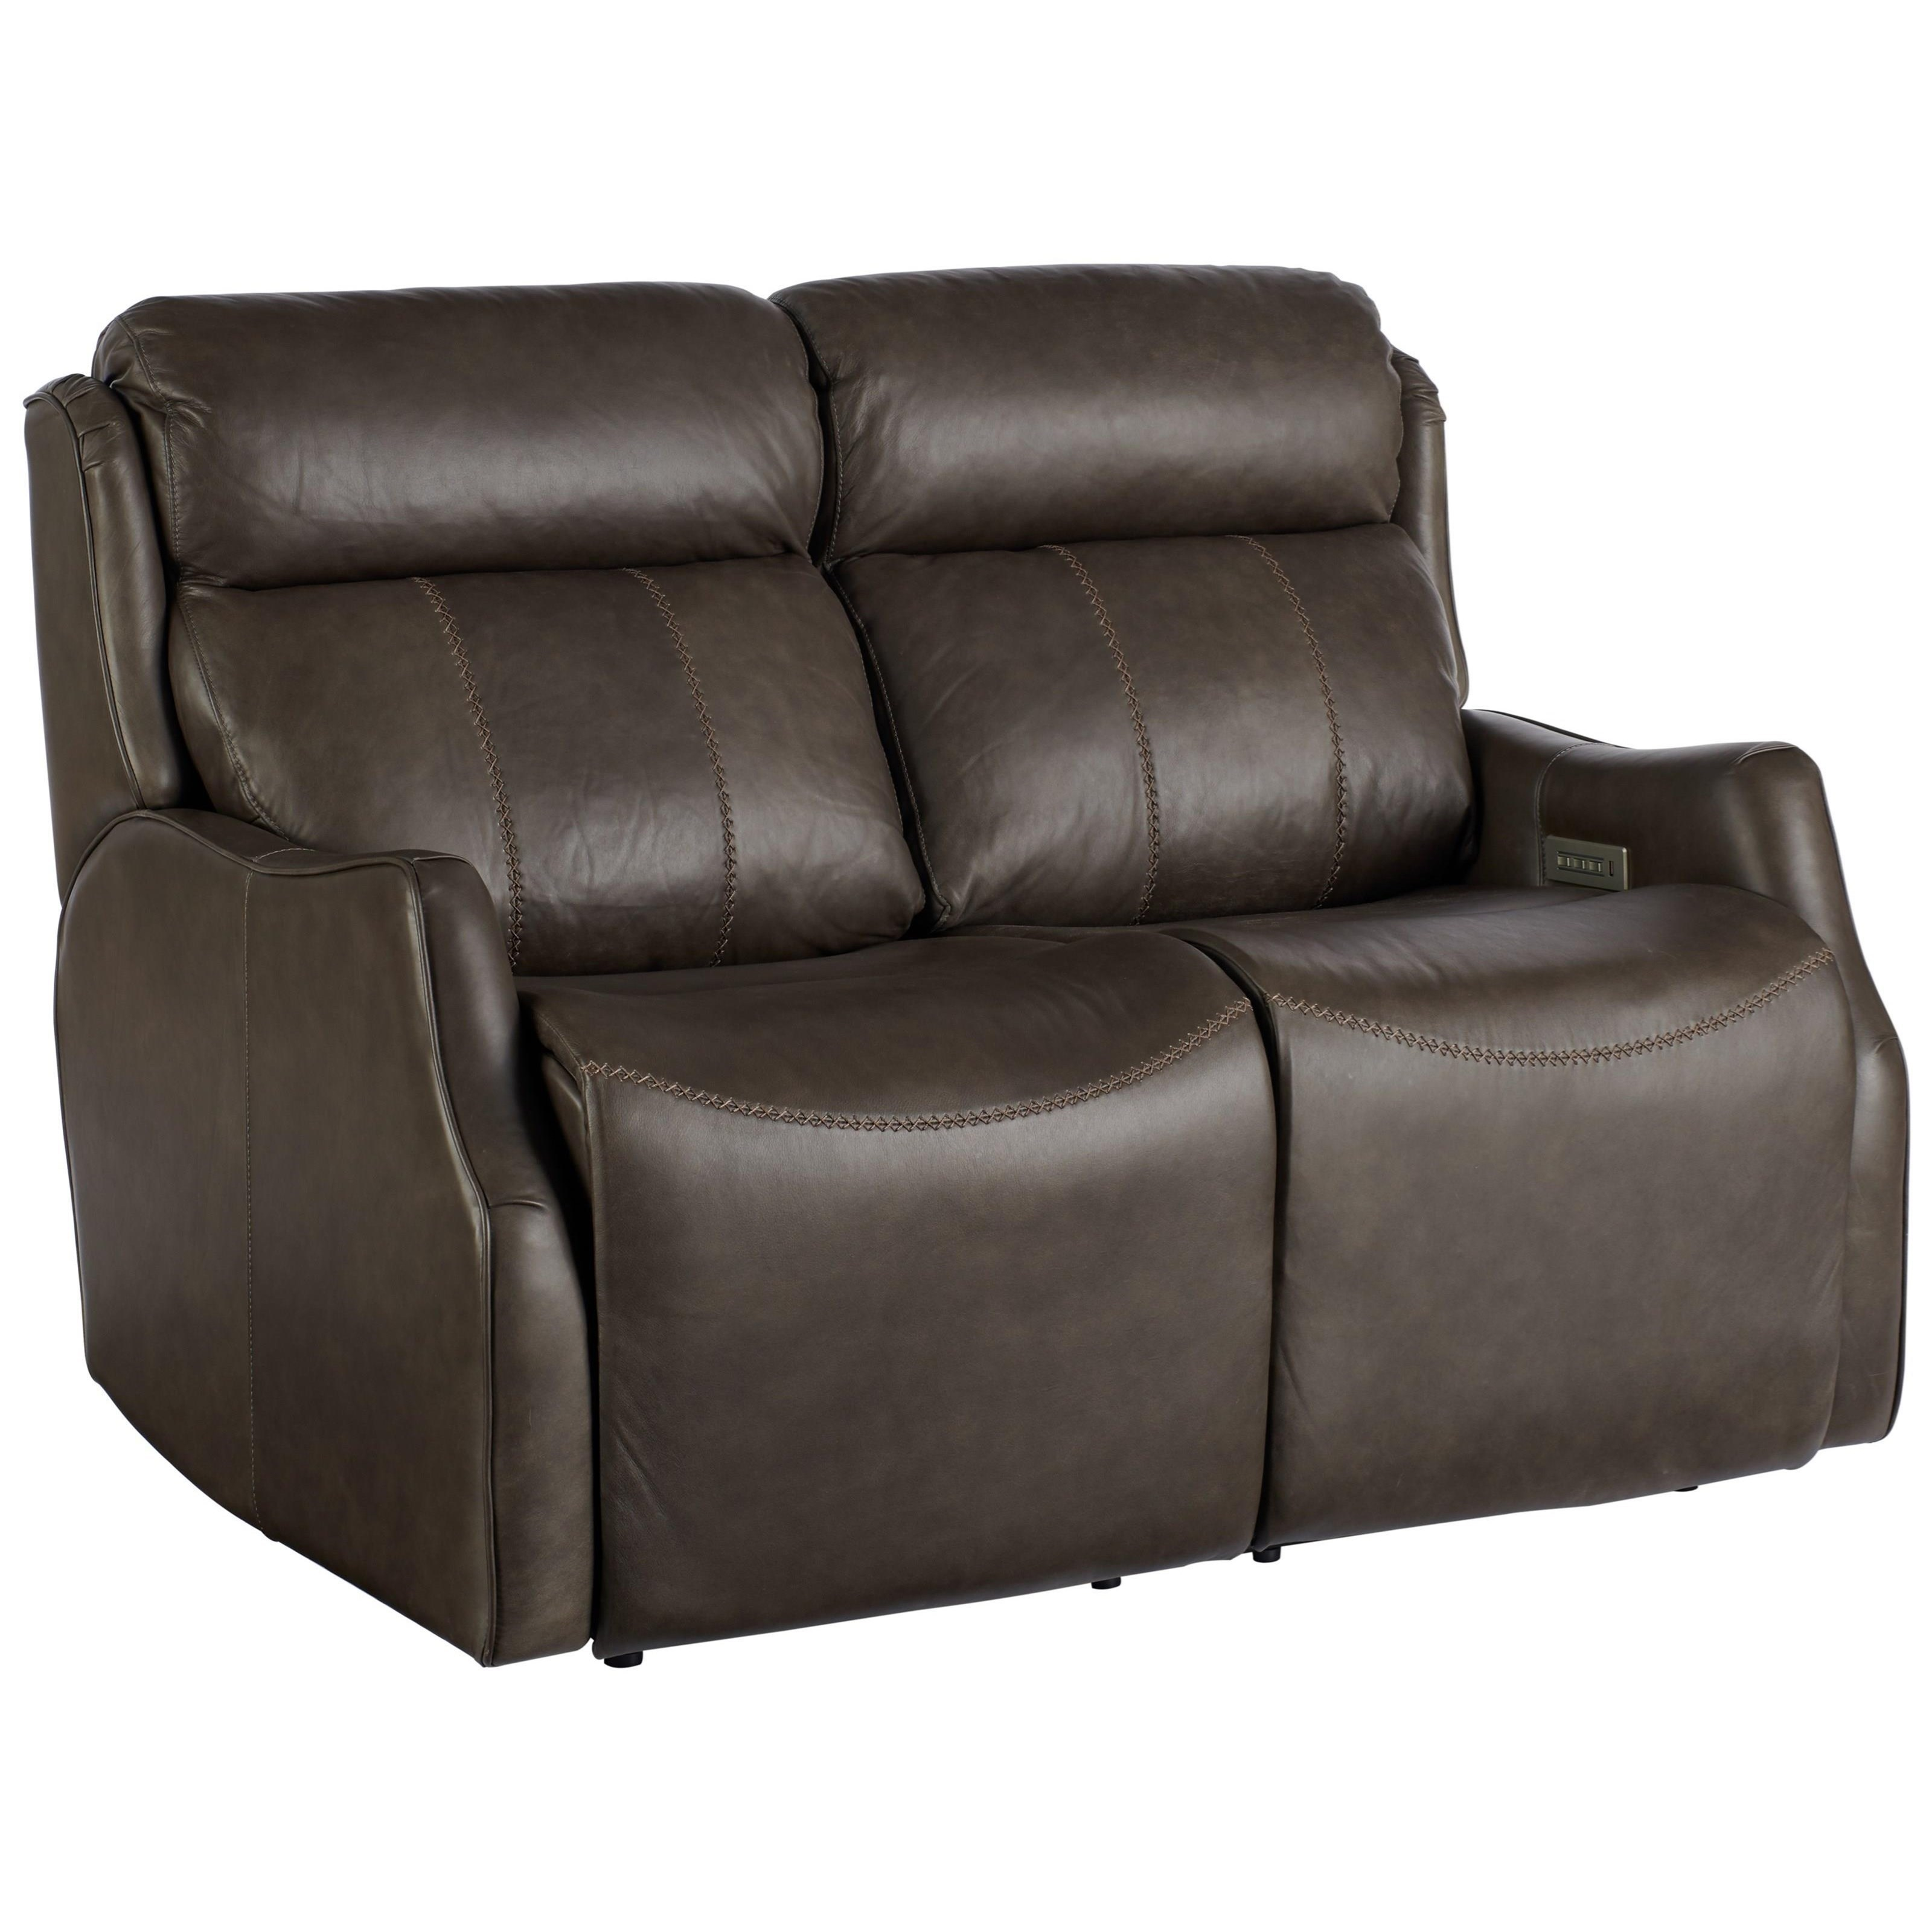 Transitional Watson Motion Loveseat with Power Recline